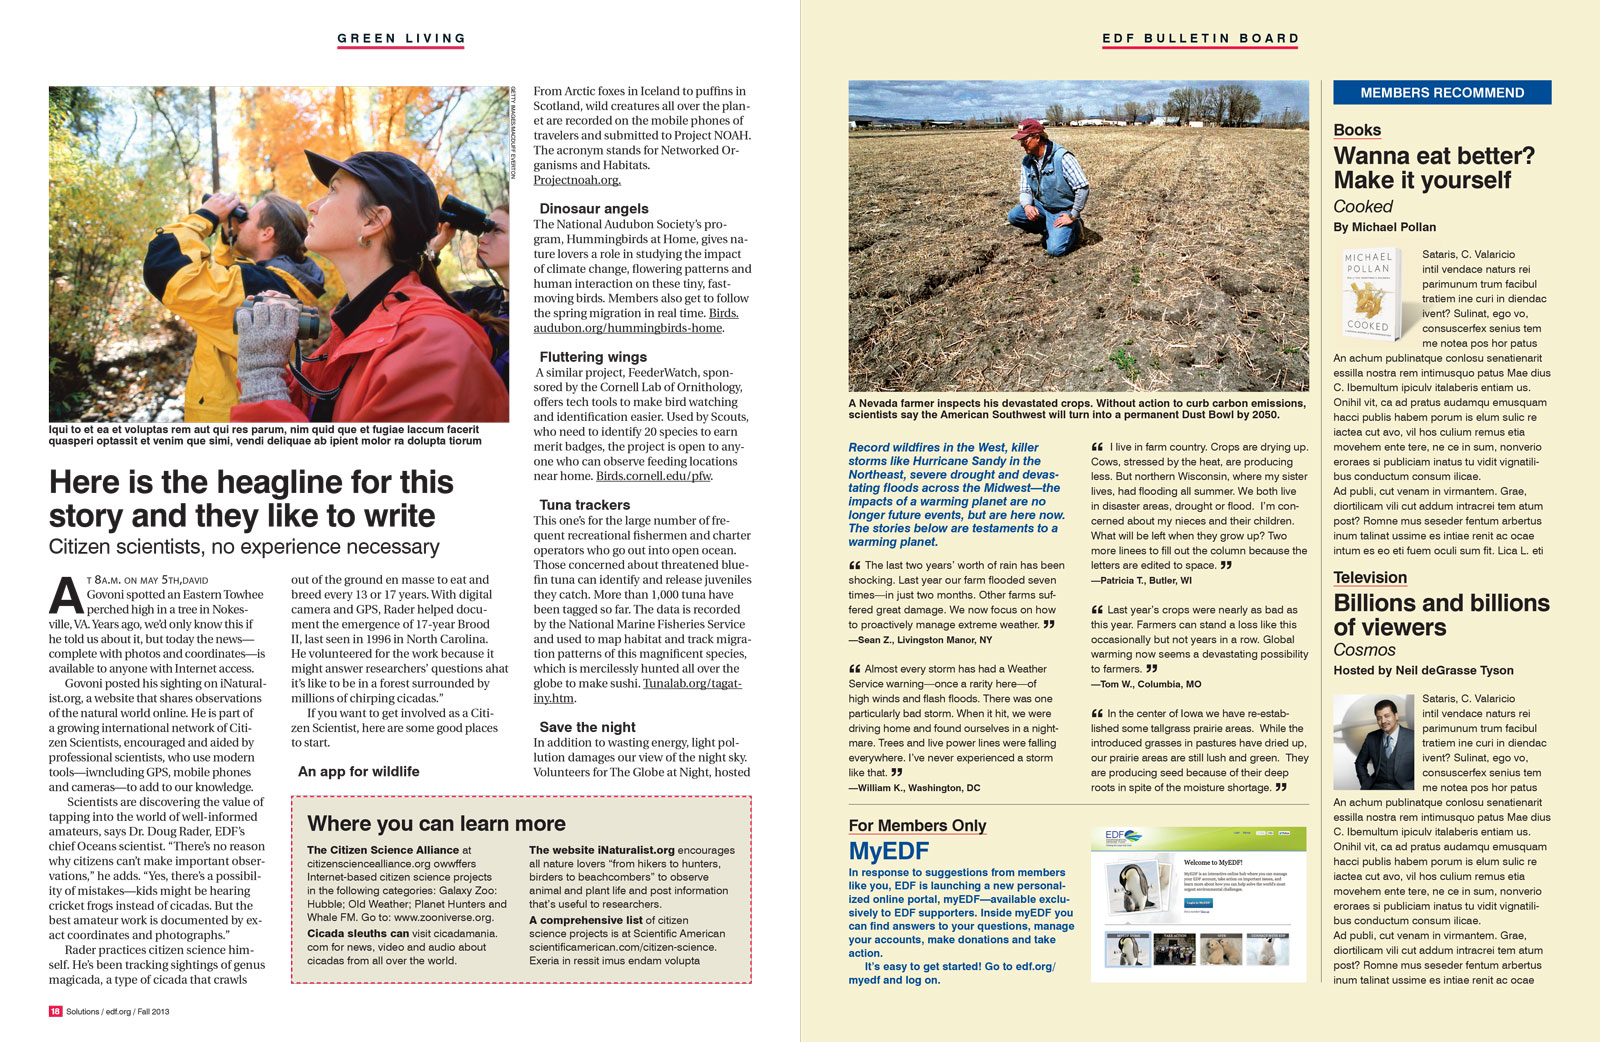 Solutions_launch_issue-18-19.jpg